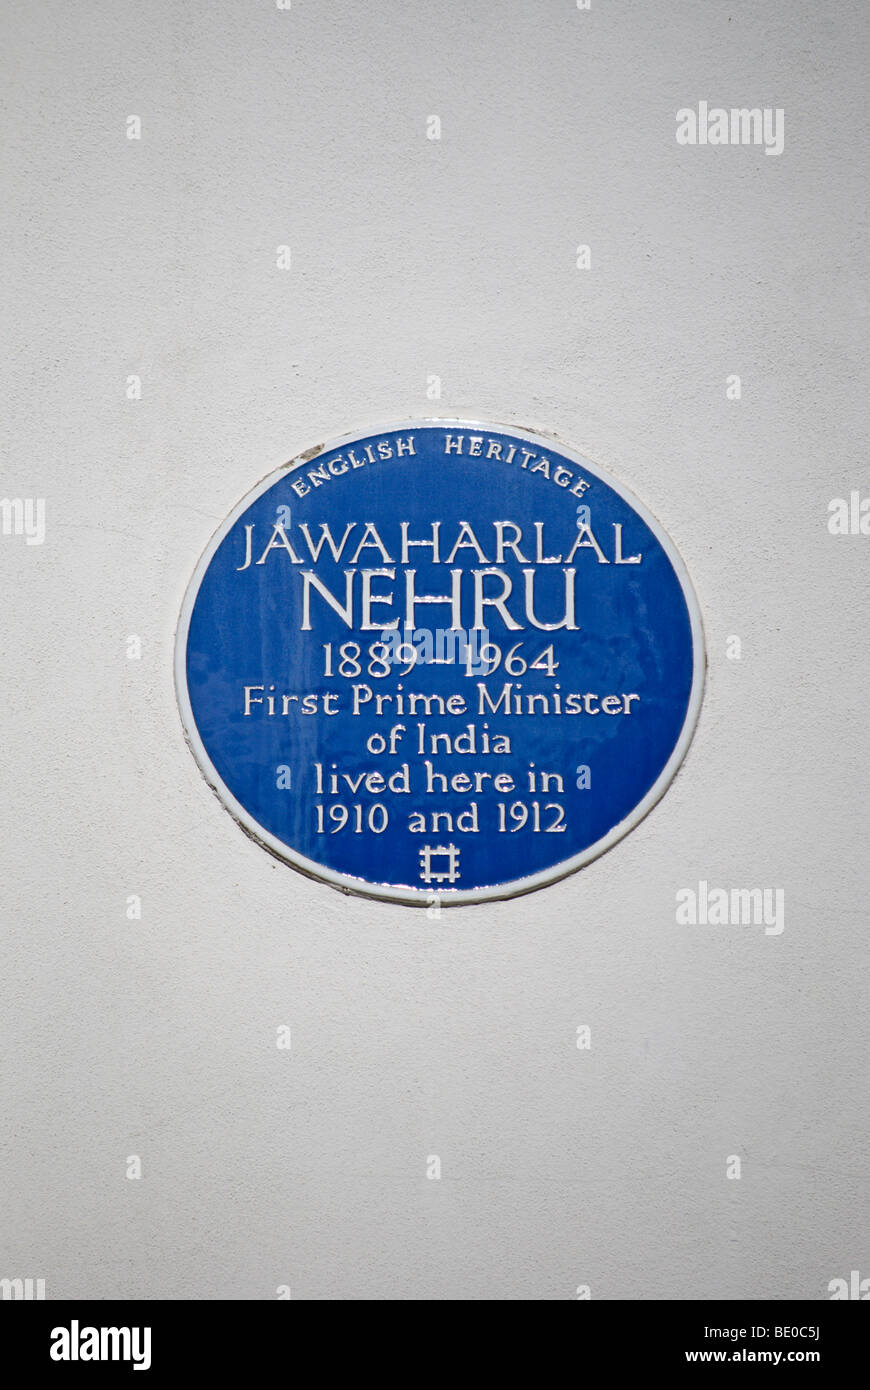 english heritage blue plaque marking a former home of  jawaharlal nehru, first prime minister of india, in notting - Stock Image